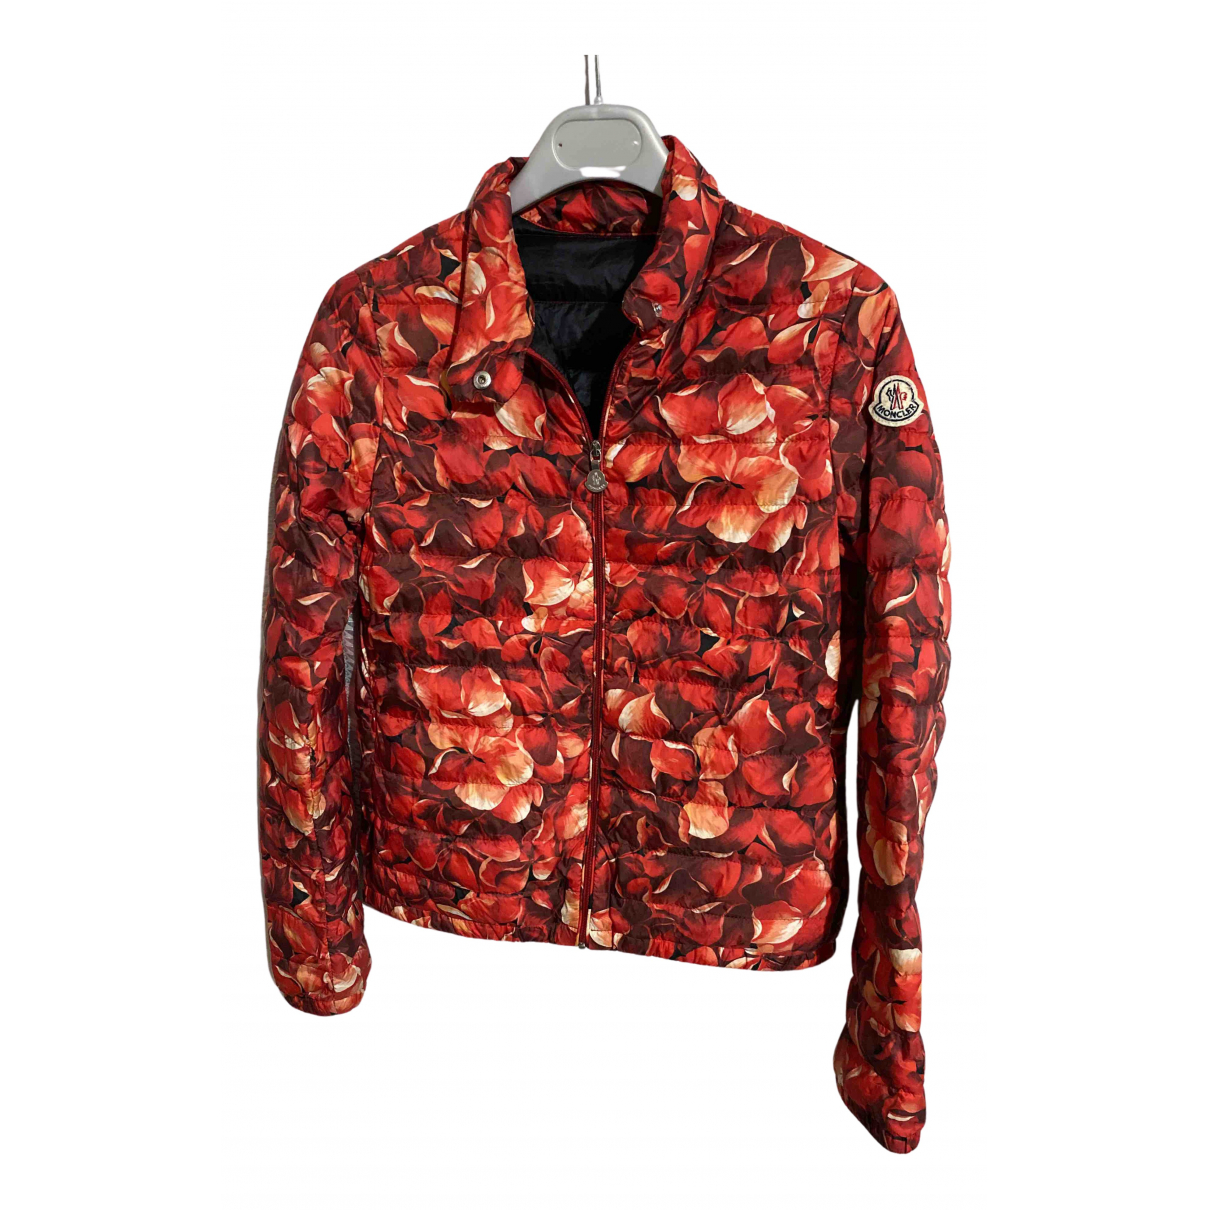 Moncler N Red jacket & coat for Kids 12 years - XS FR